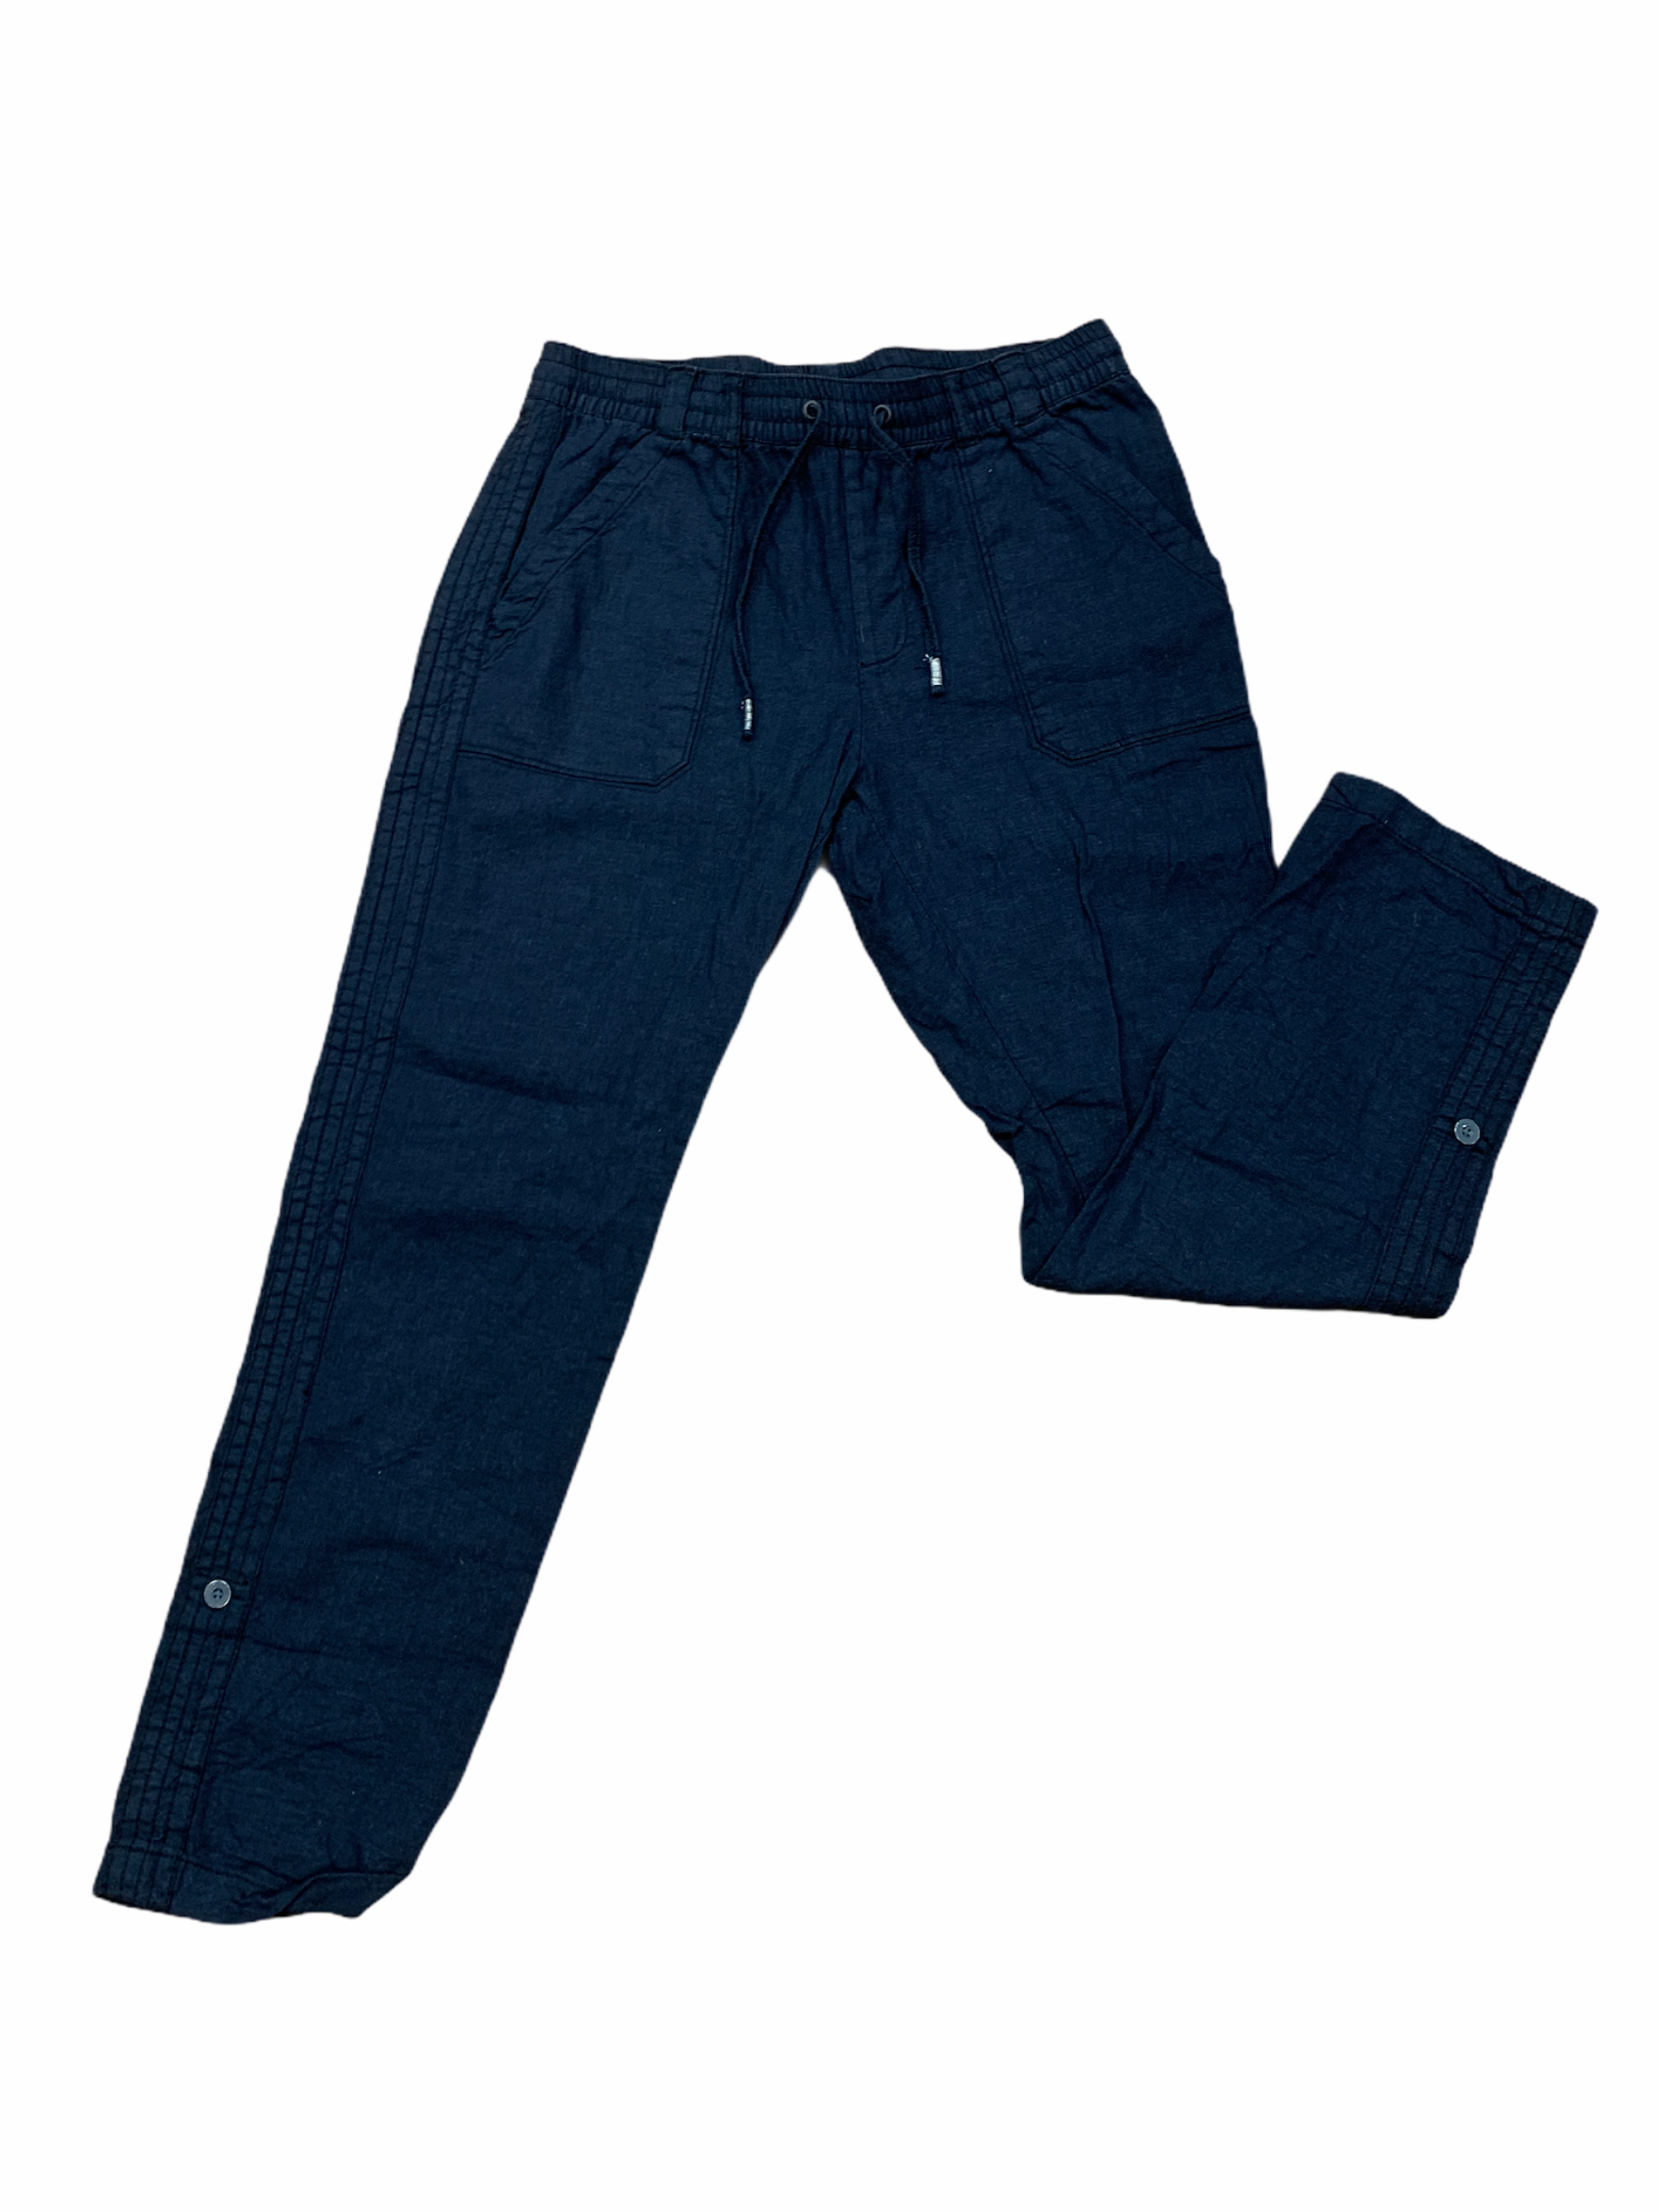 Primary Photo - BRAND: ANTHROPOLOGIE <BR>STYLE: PANTS <BR>COLOR: NAVY <BR>SIZE: M <BR>OTHER INFO: LINEN <BR>SKU: 223-22318-117775